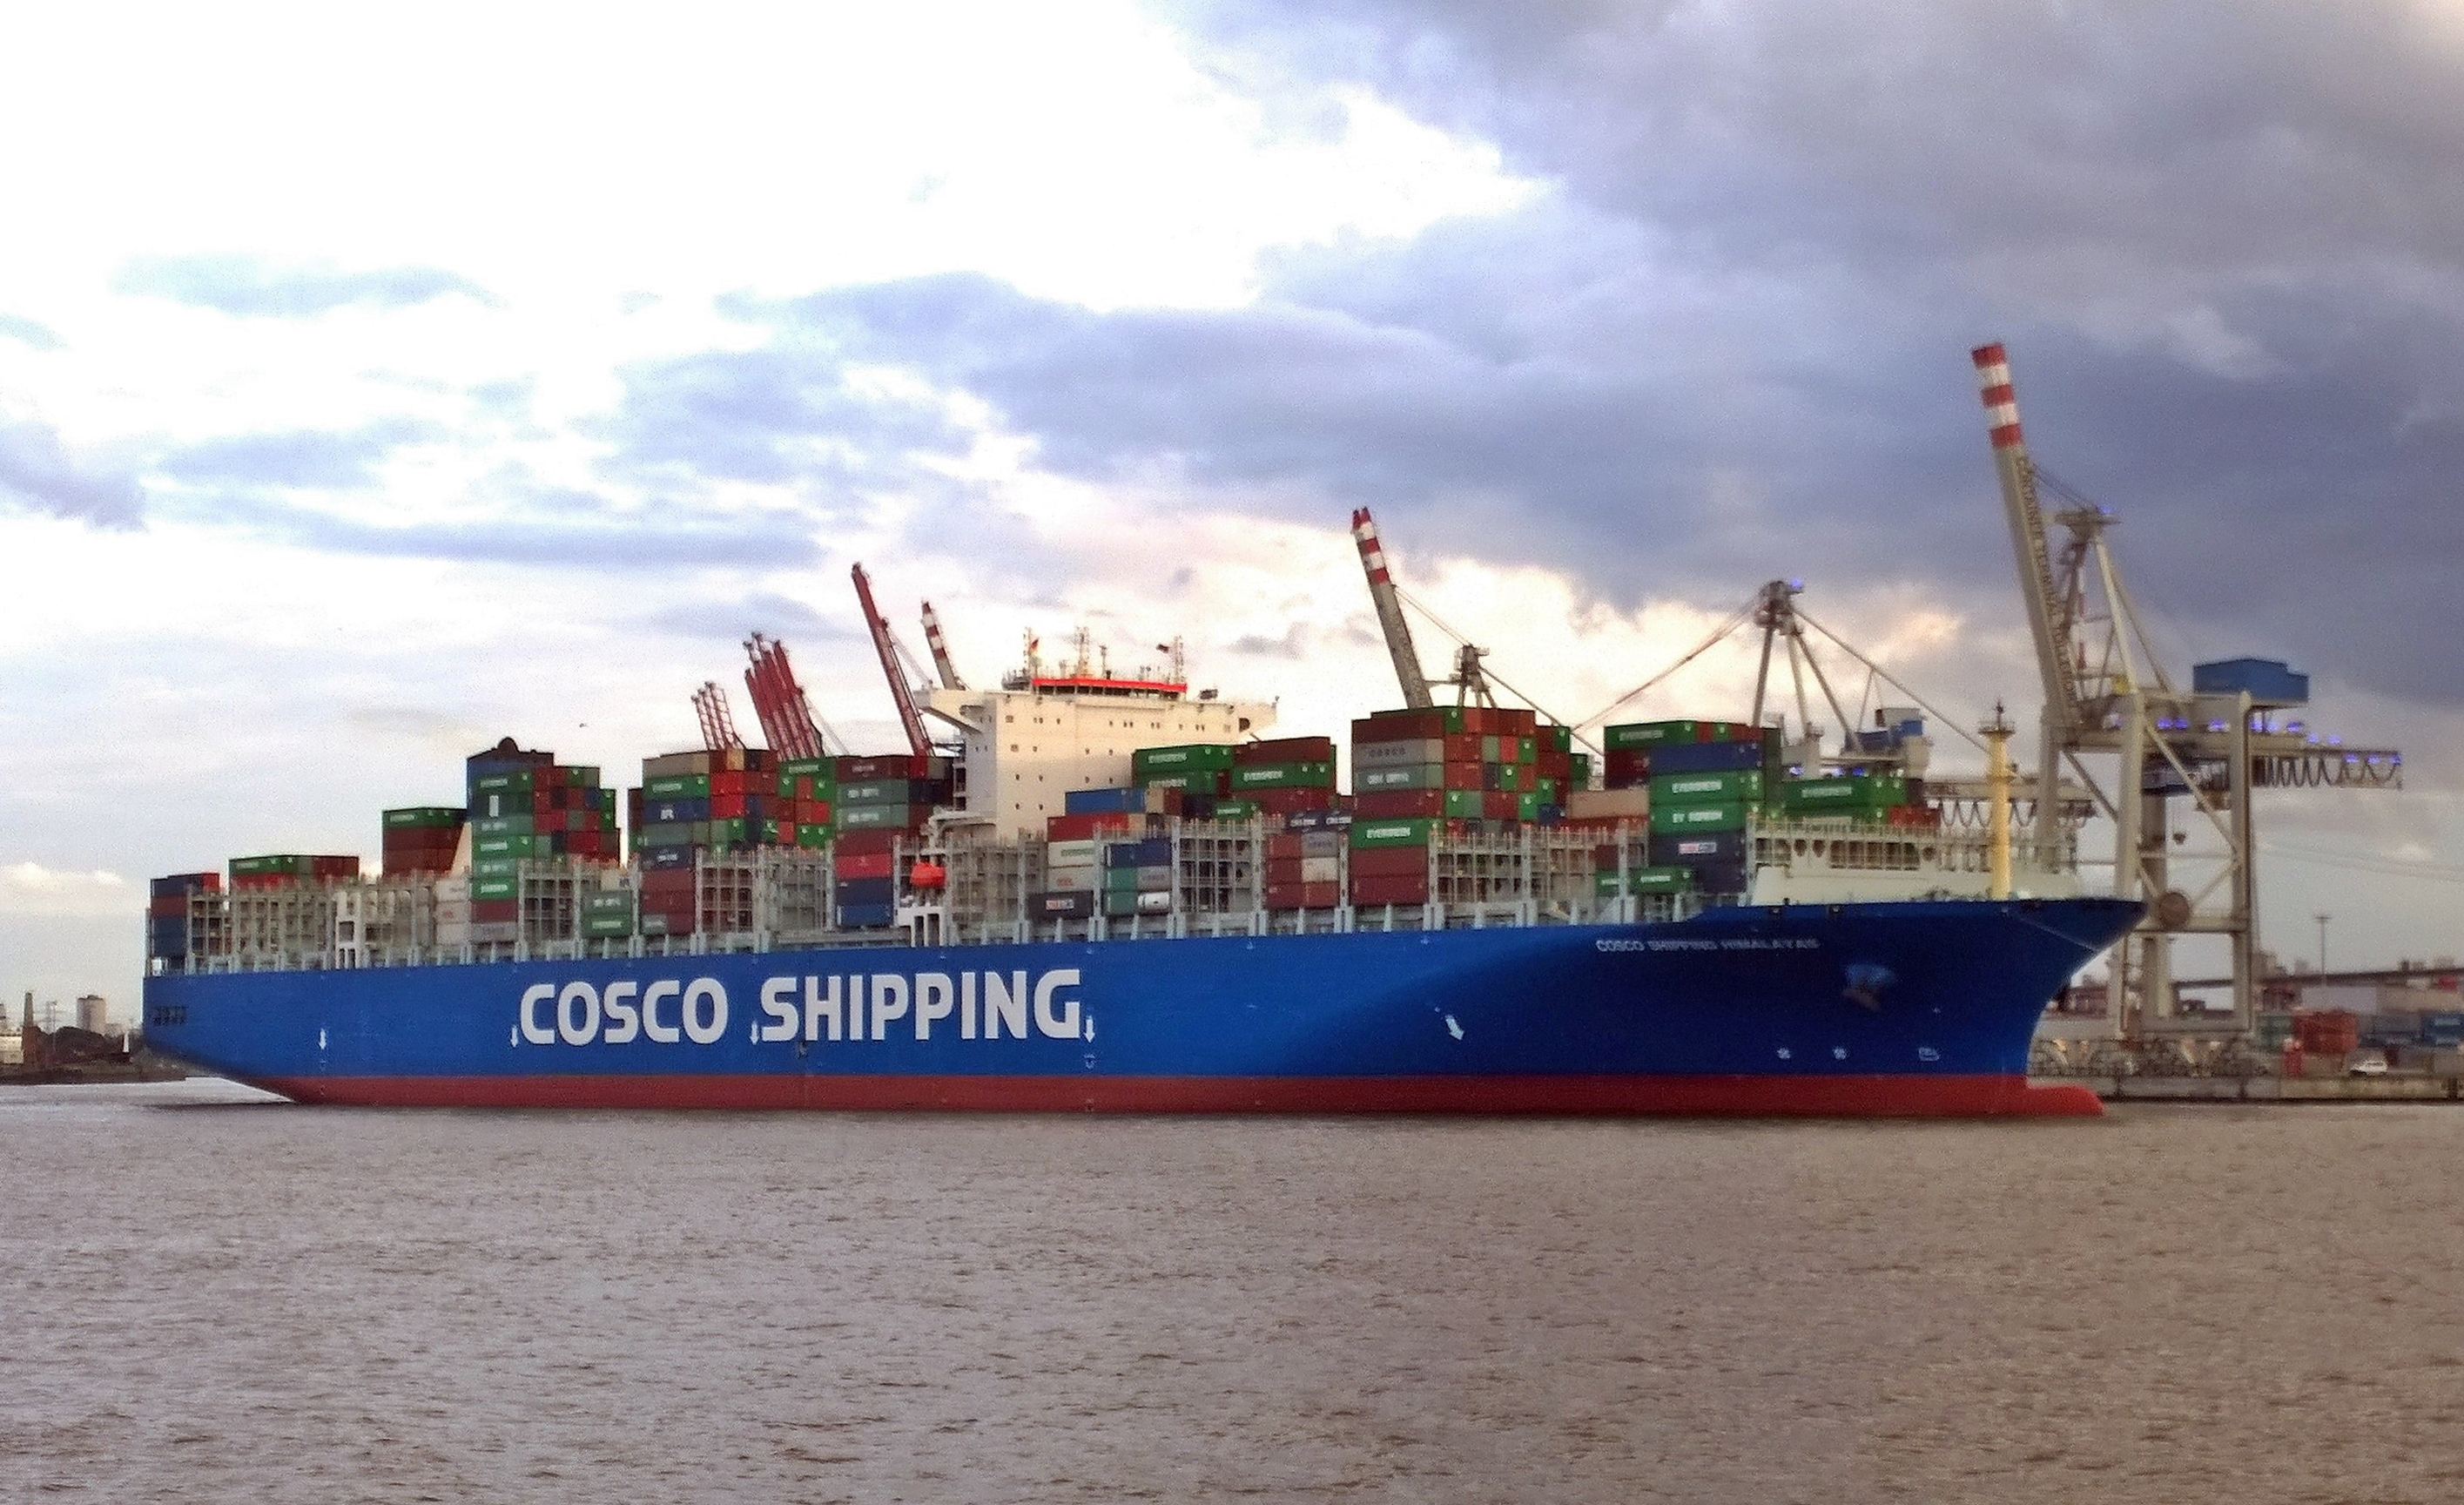 Himalaya Hamburg Datei The New Container Ship Cosco Shipping Himalayas In